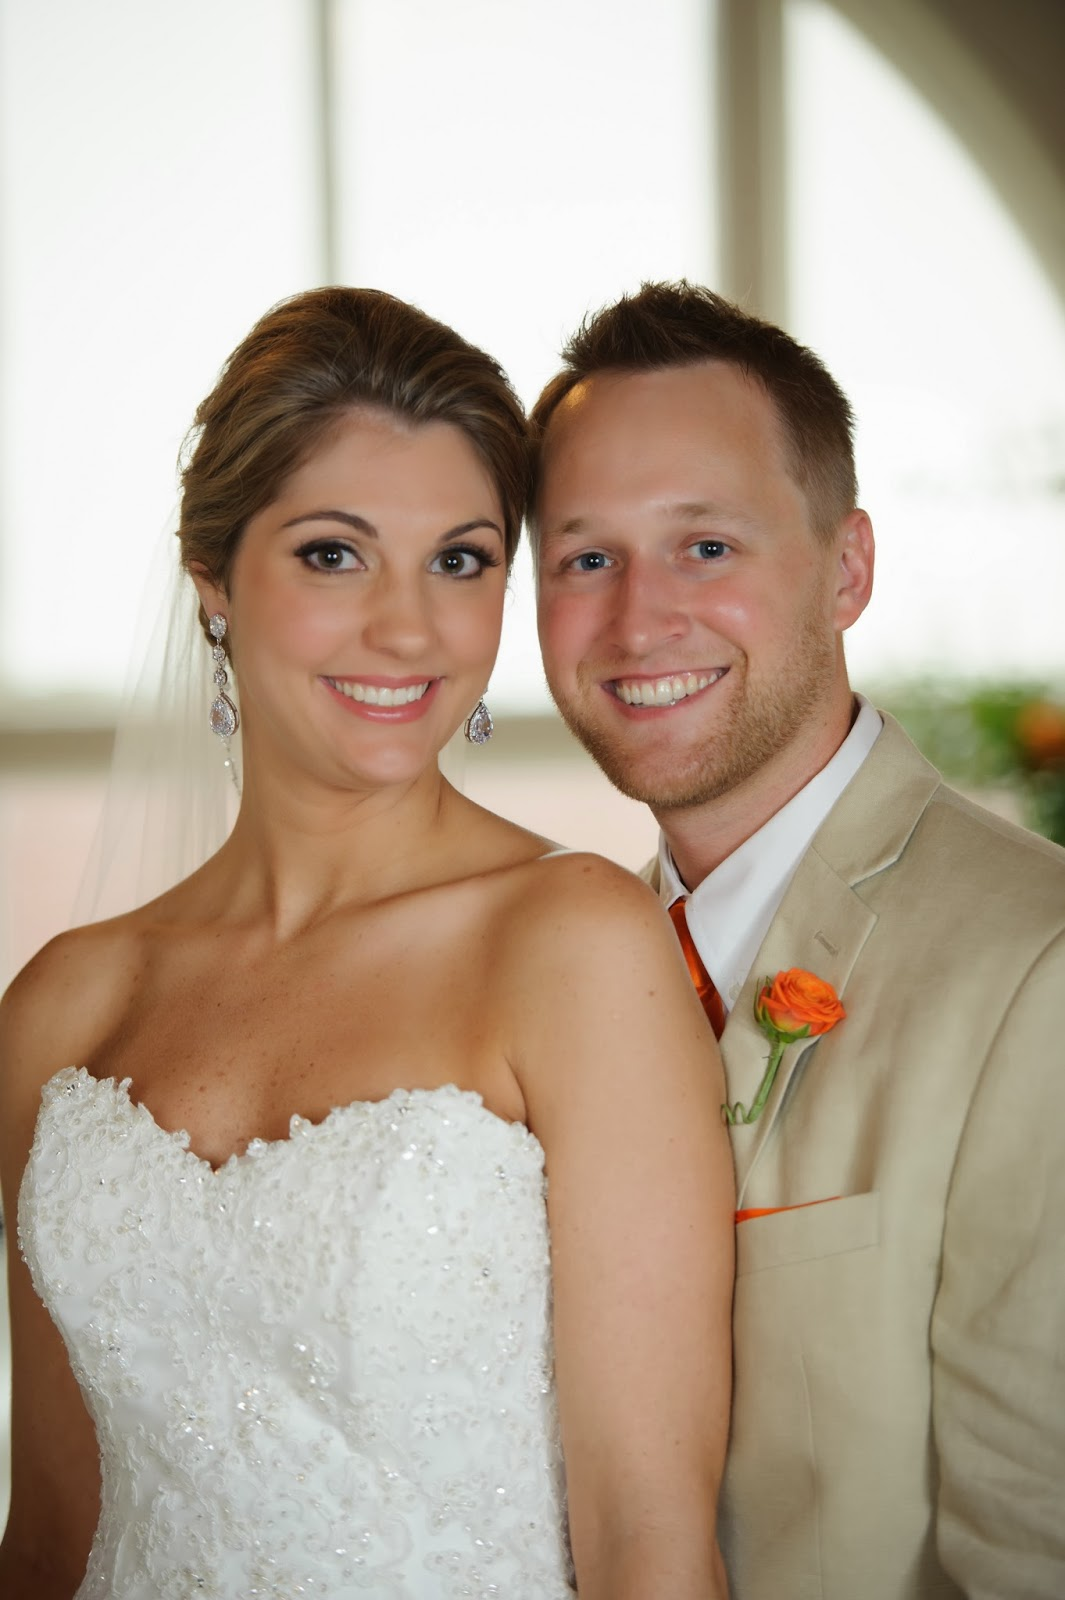 Cable Photography & Video: Toni Blevins & Lee Hobbs - Wedding ...